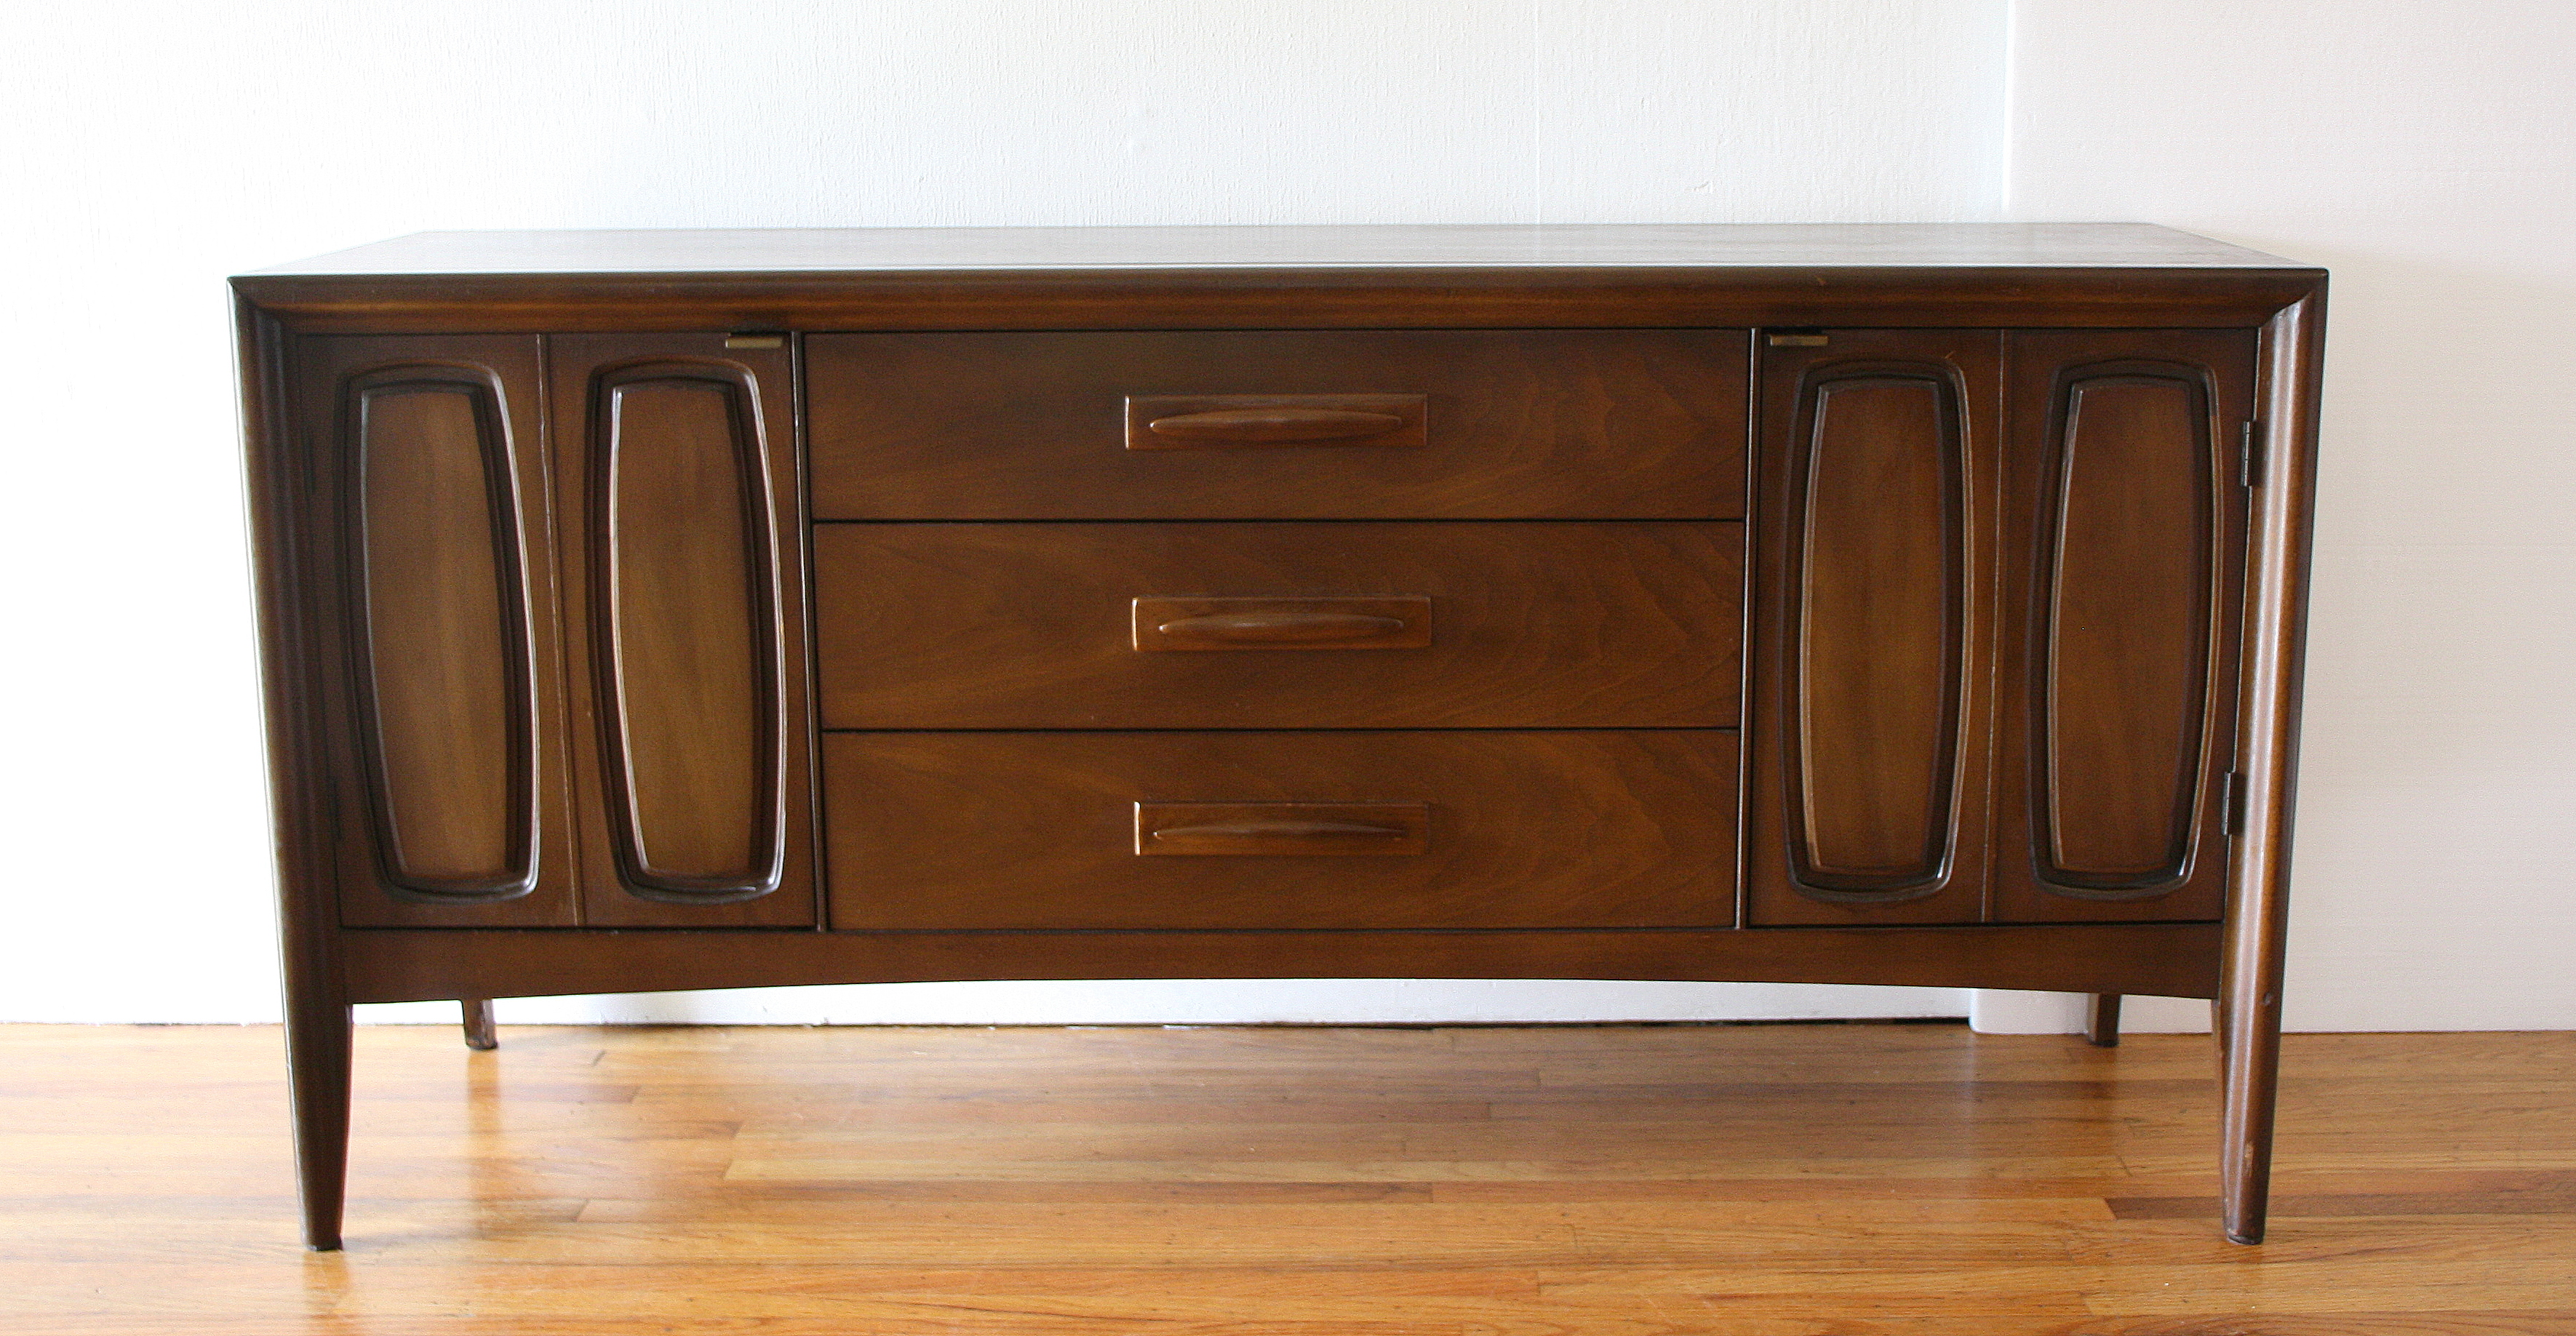 Broyhill Emphasis dual side cabinet credenza 1.JPG